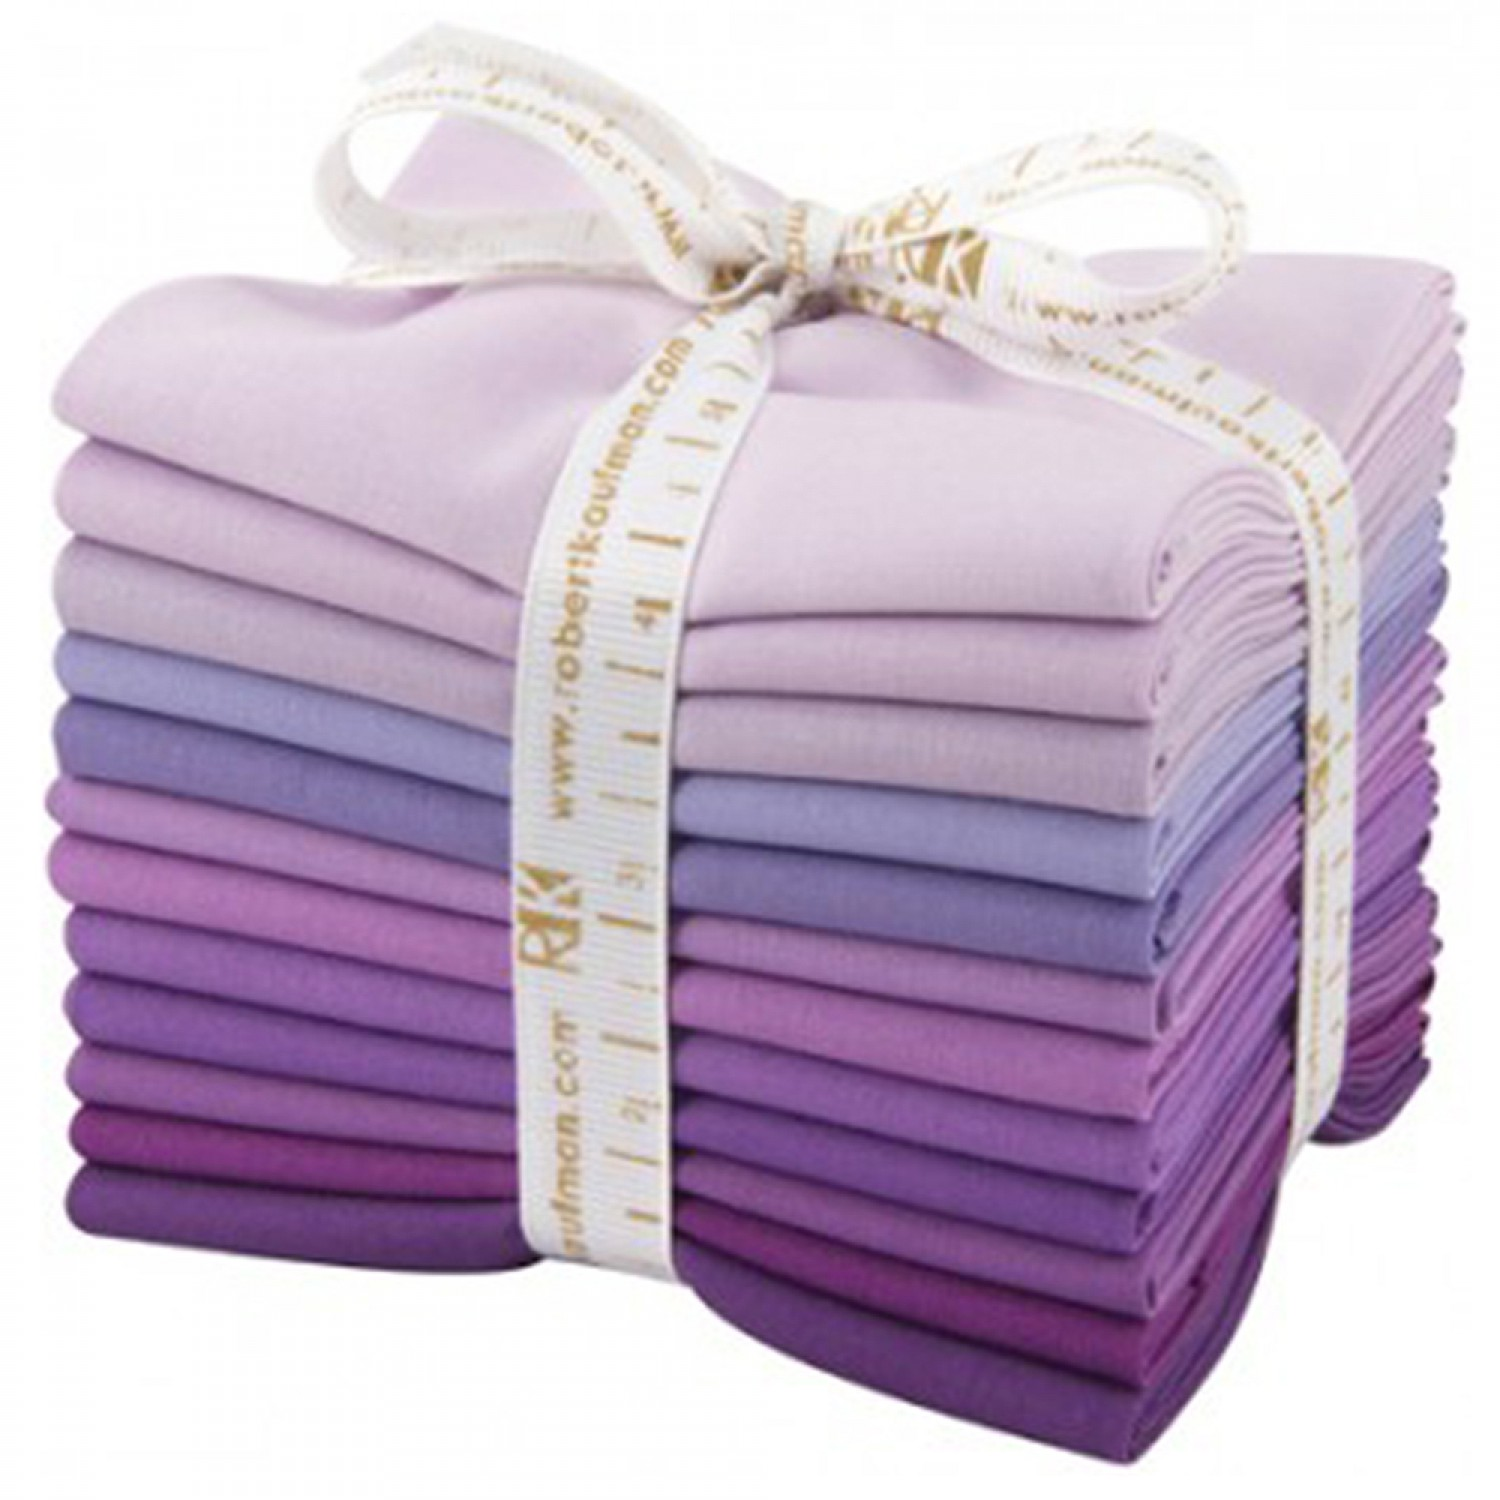 Kona Cotton Solids Fat Quarter Bundle - Lavender Fields - 12pcs